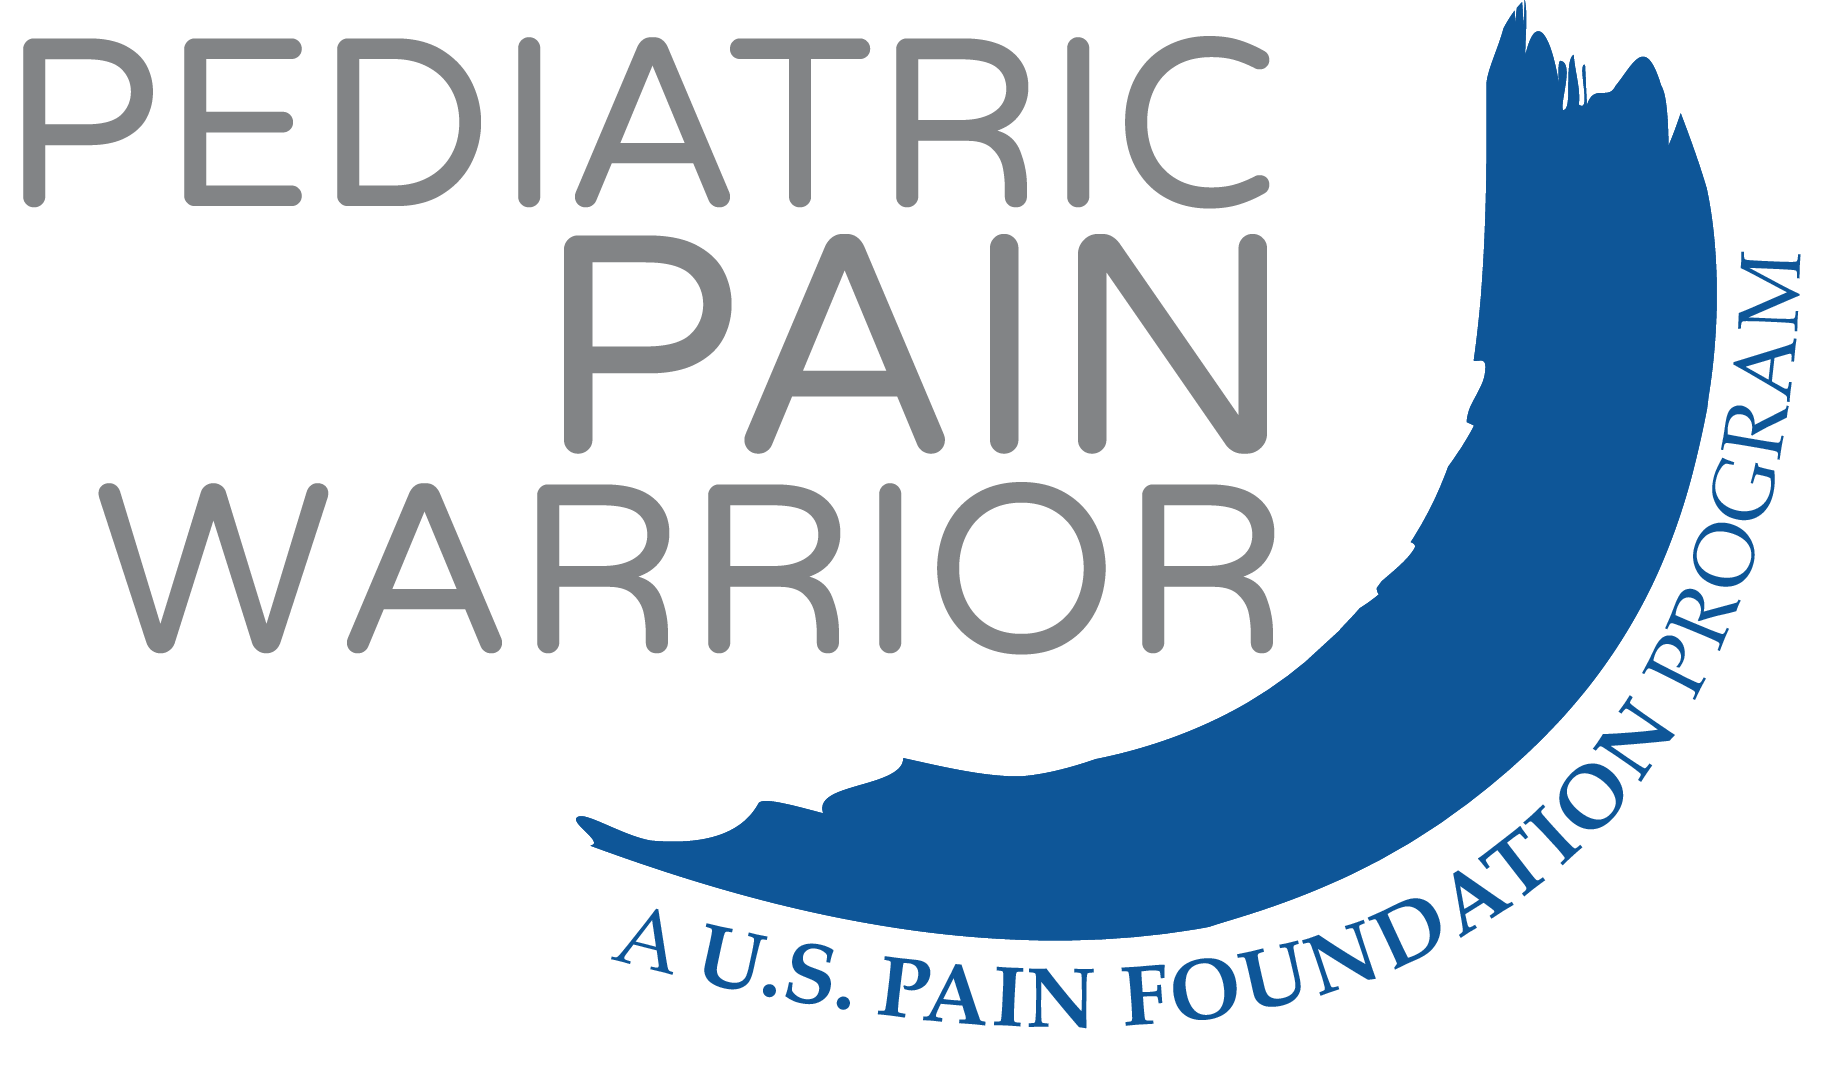 Pediatric Pain Warrior